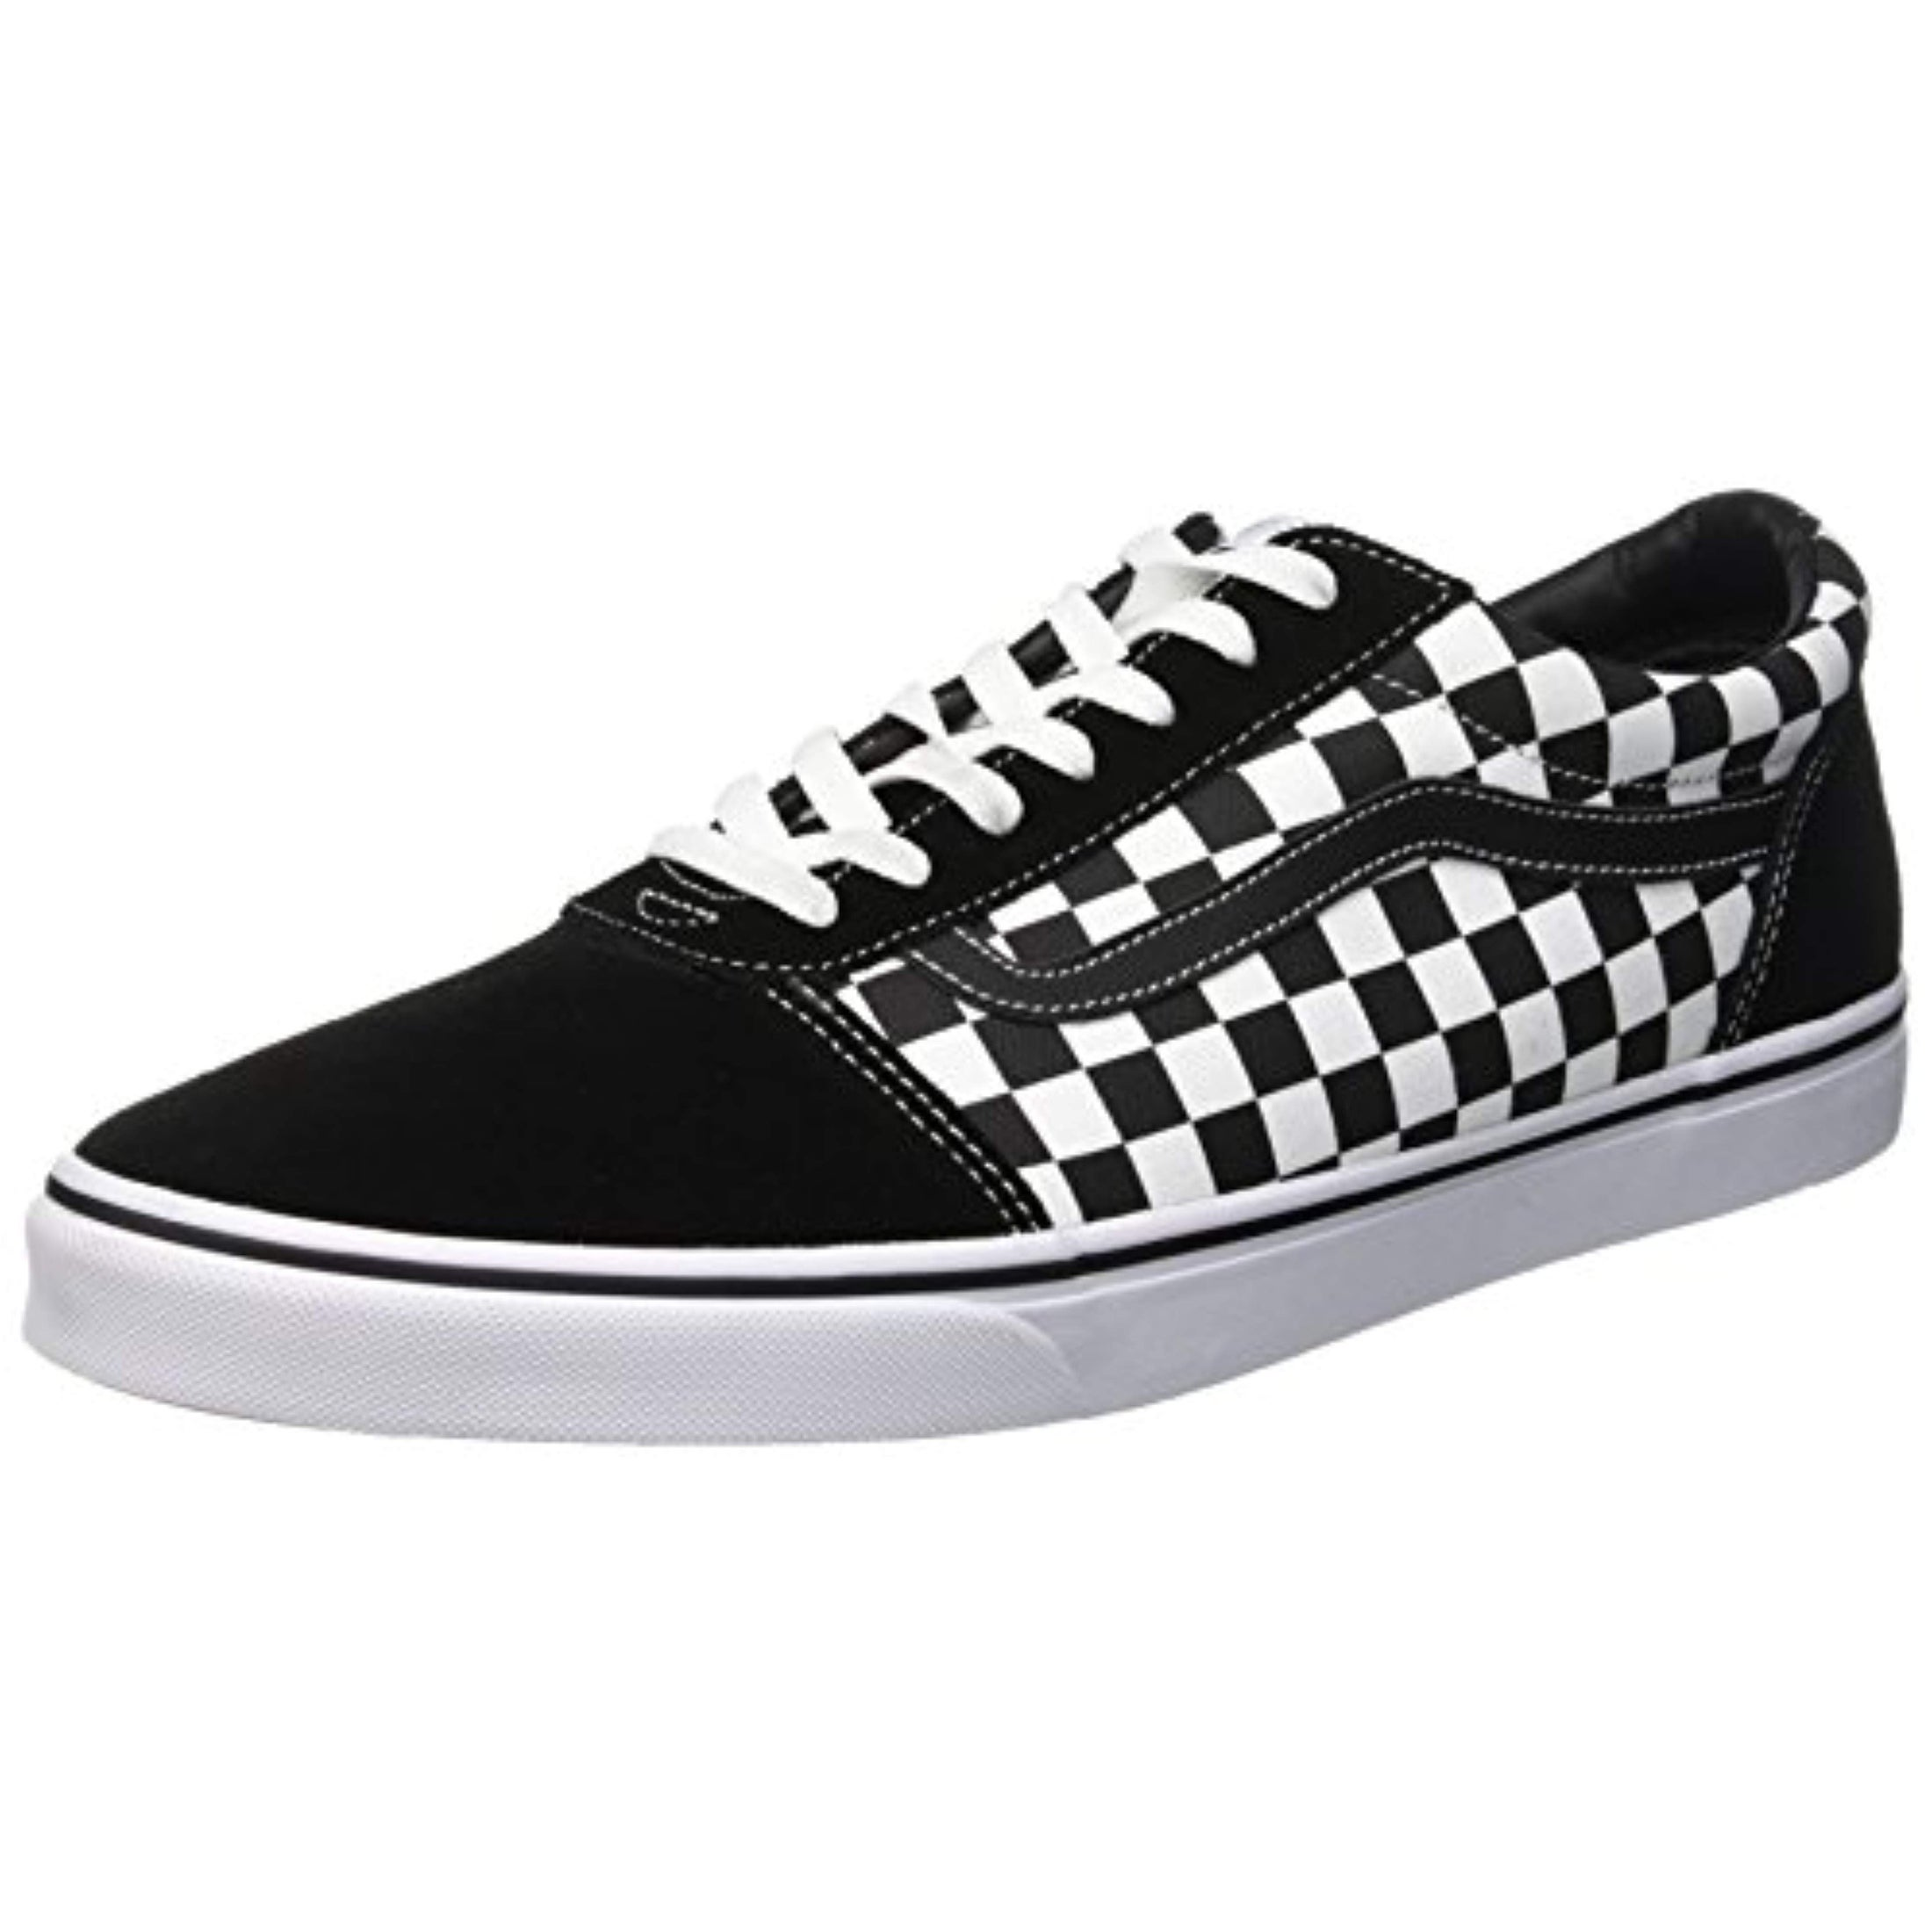 3a4d57005d Shop Vans Men  S Ward Canvas Low-Top Sneakers